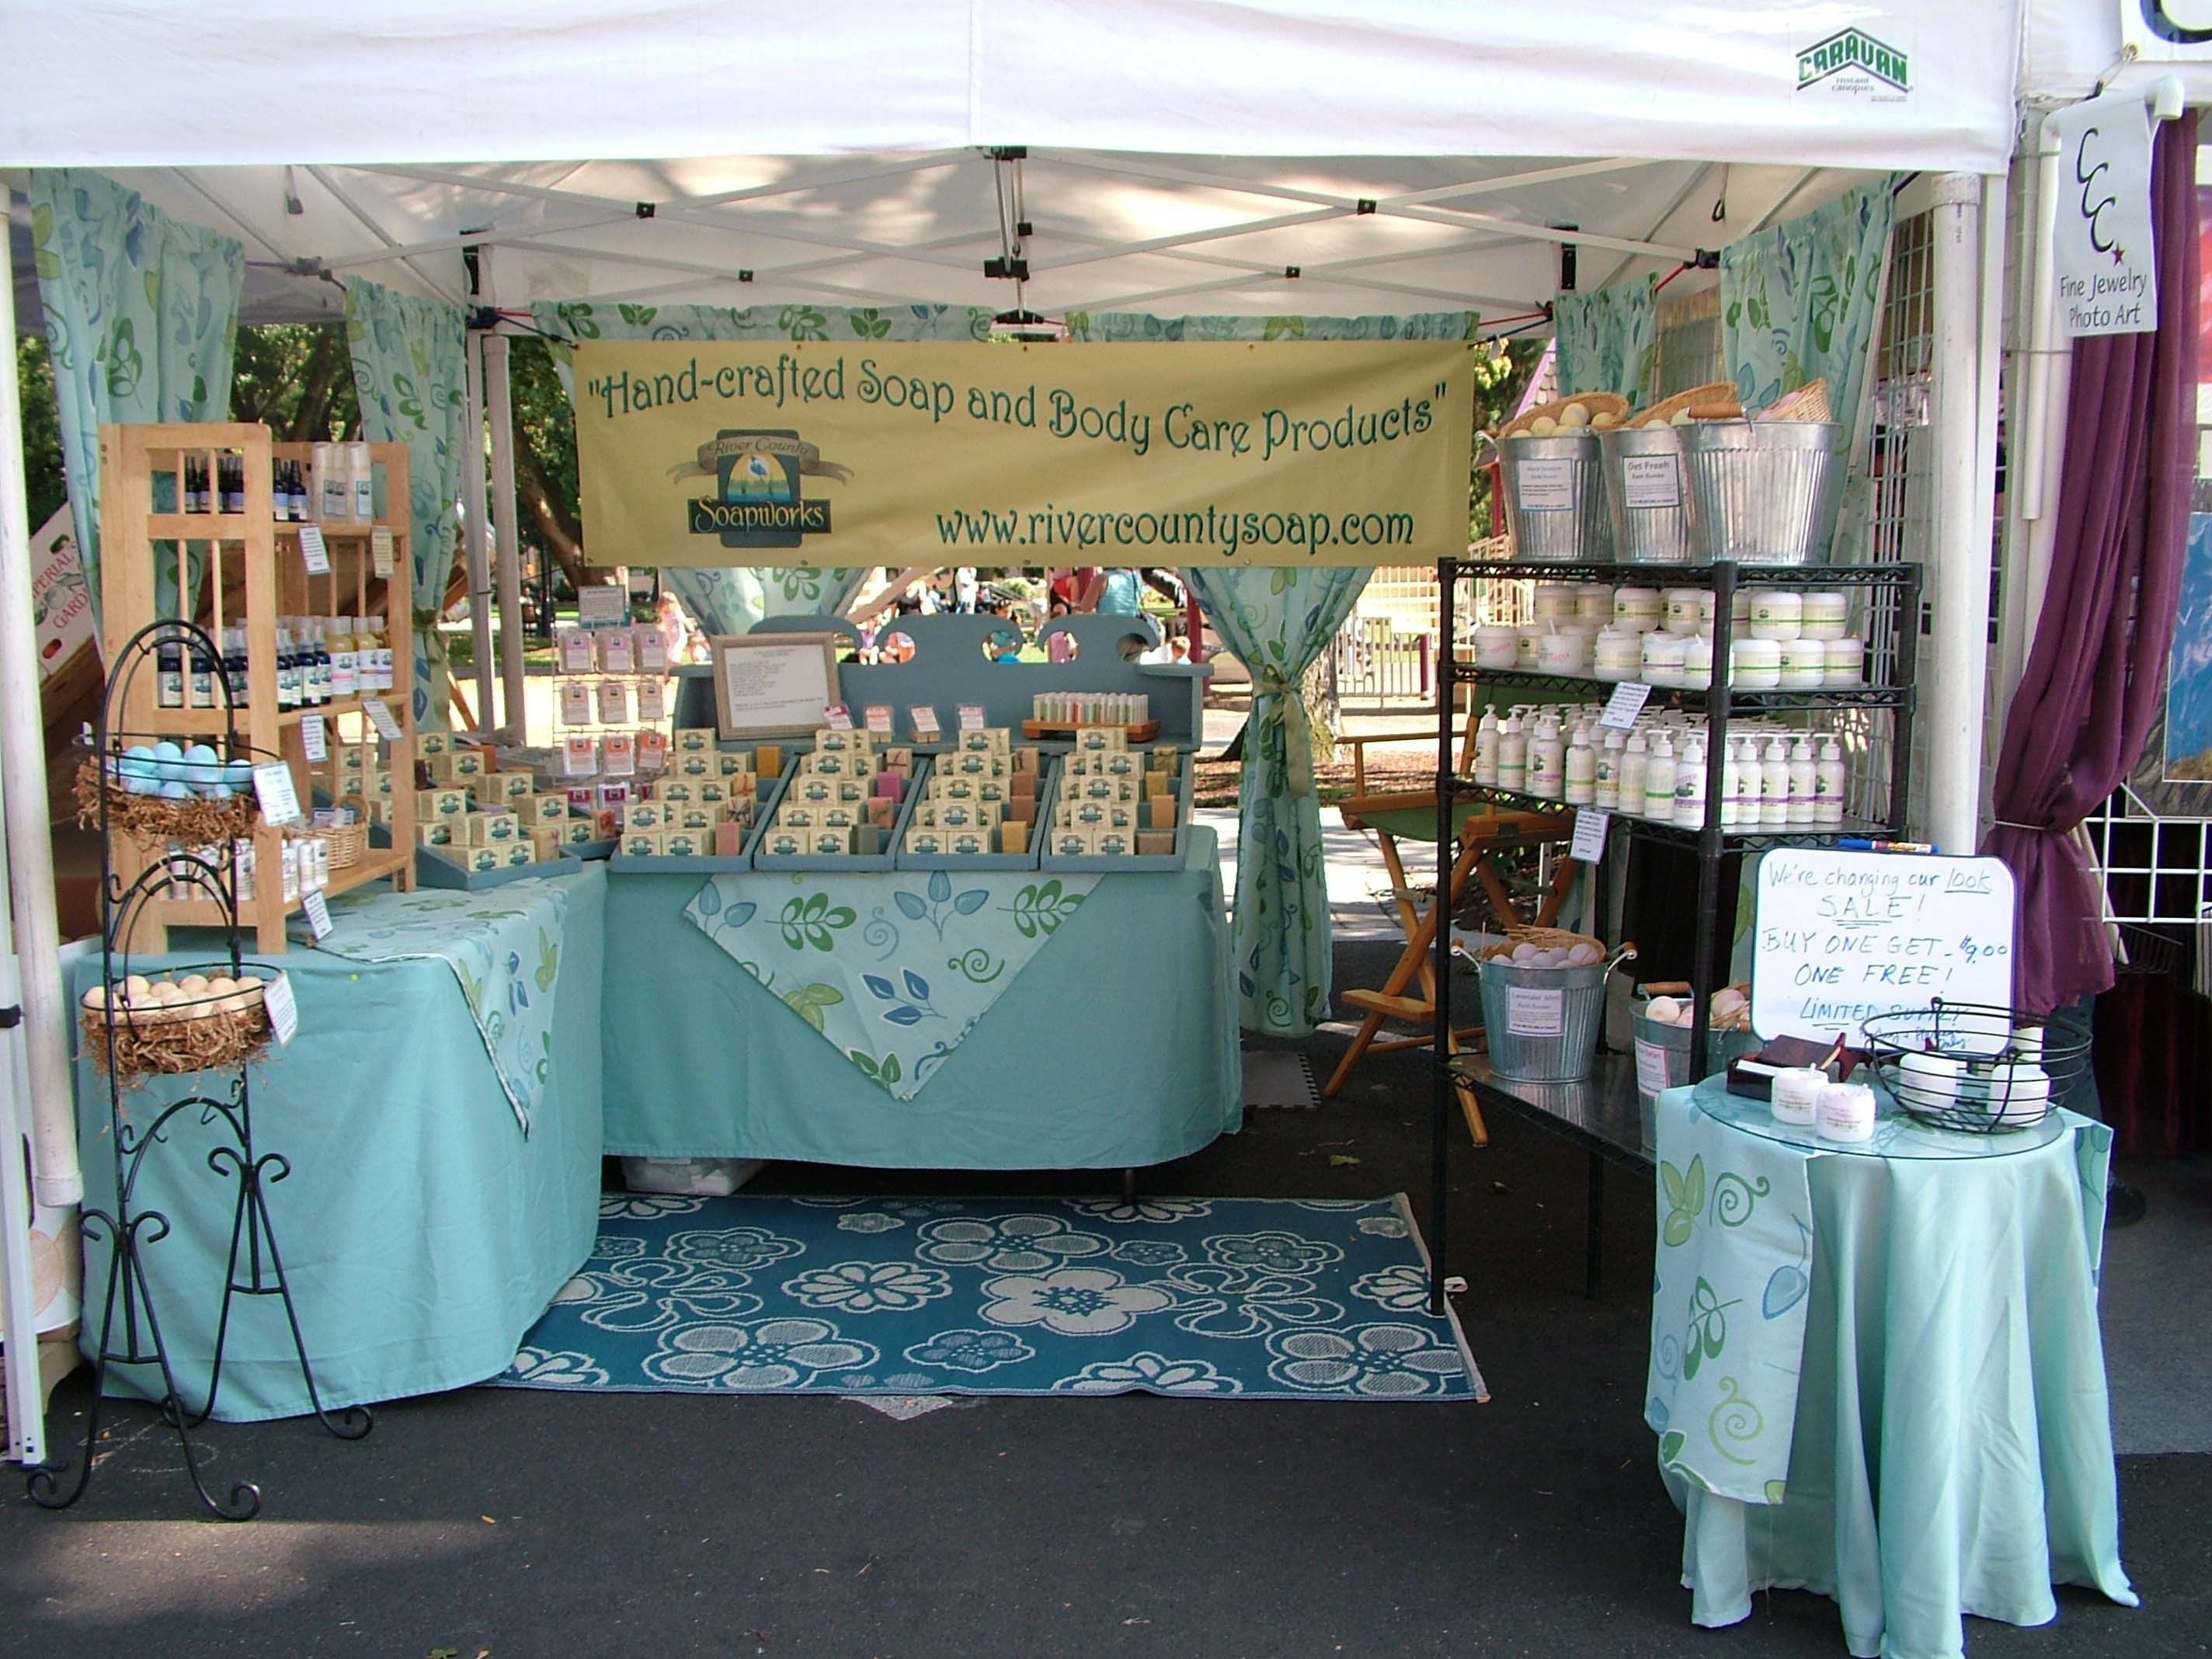 Farmers Market Booth Ideas Filed Under Handmade Soaps Natural Skin